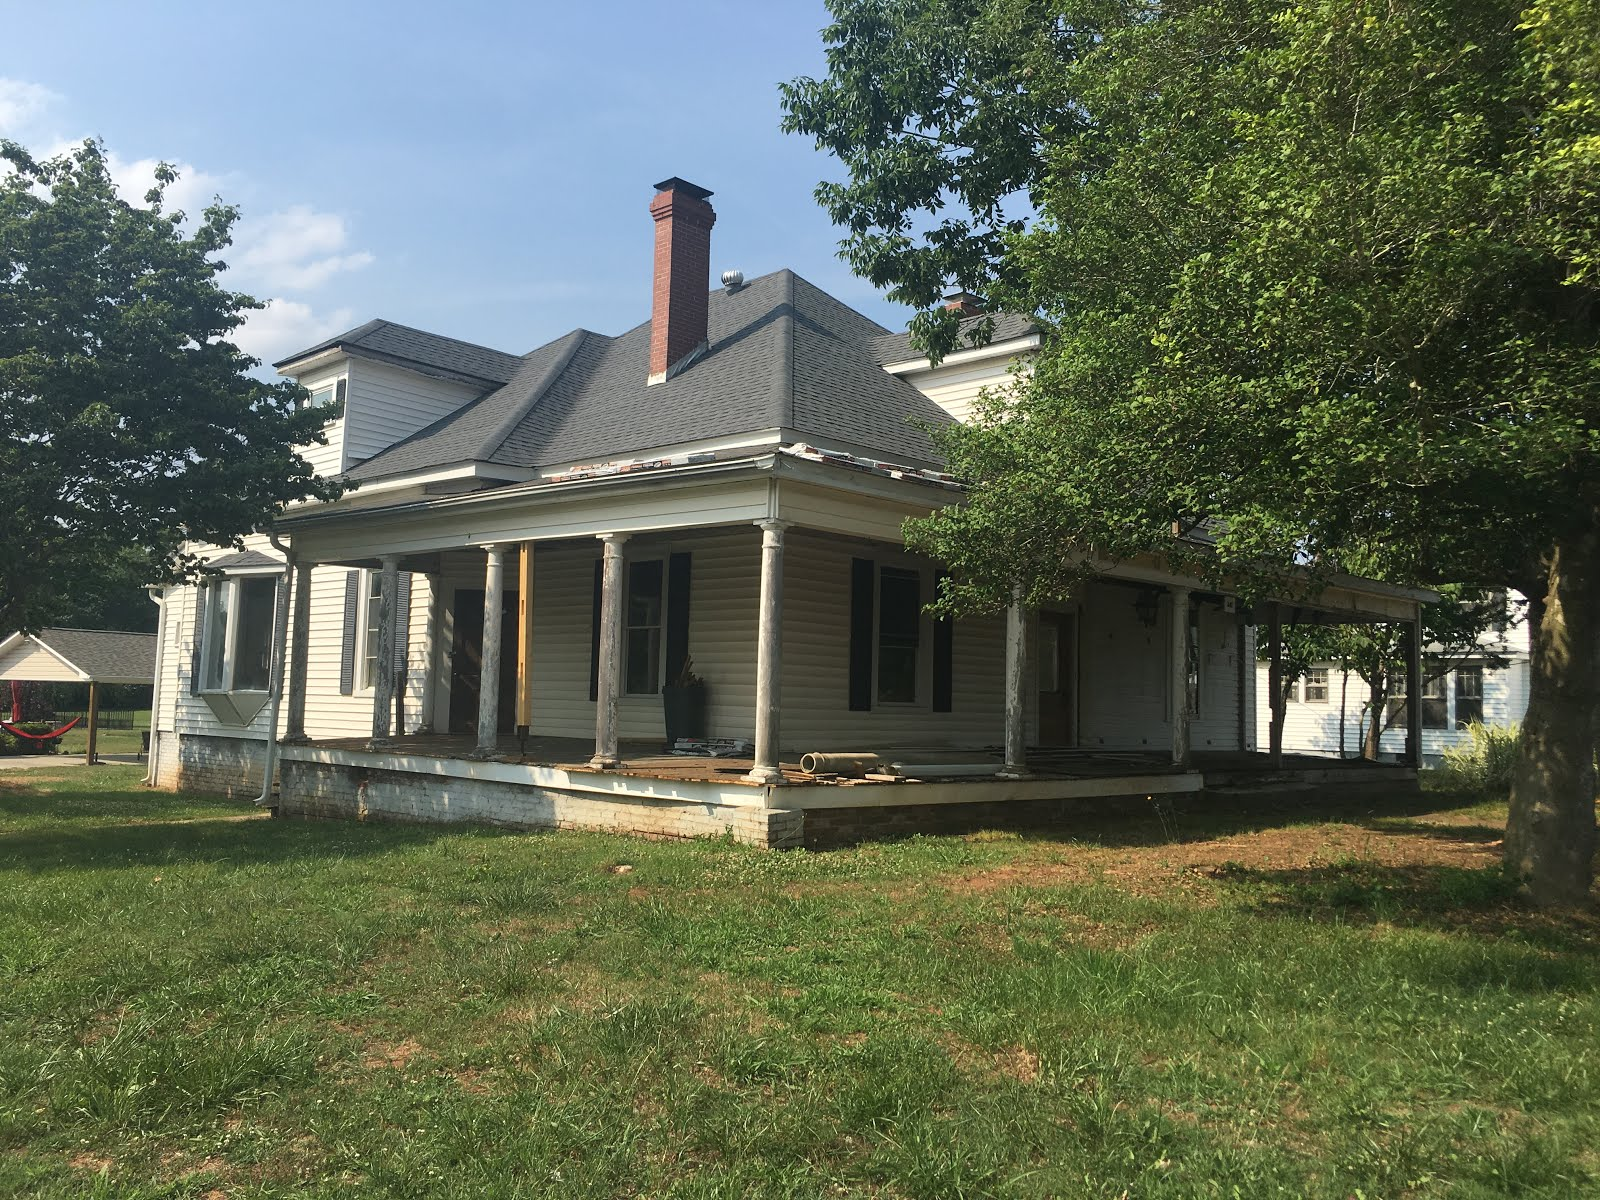 501 N. Main Street, China Grove NC 28023 ~ circa 1914 ~ $71,900